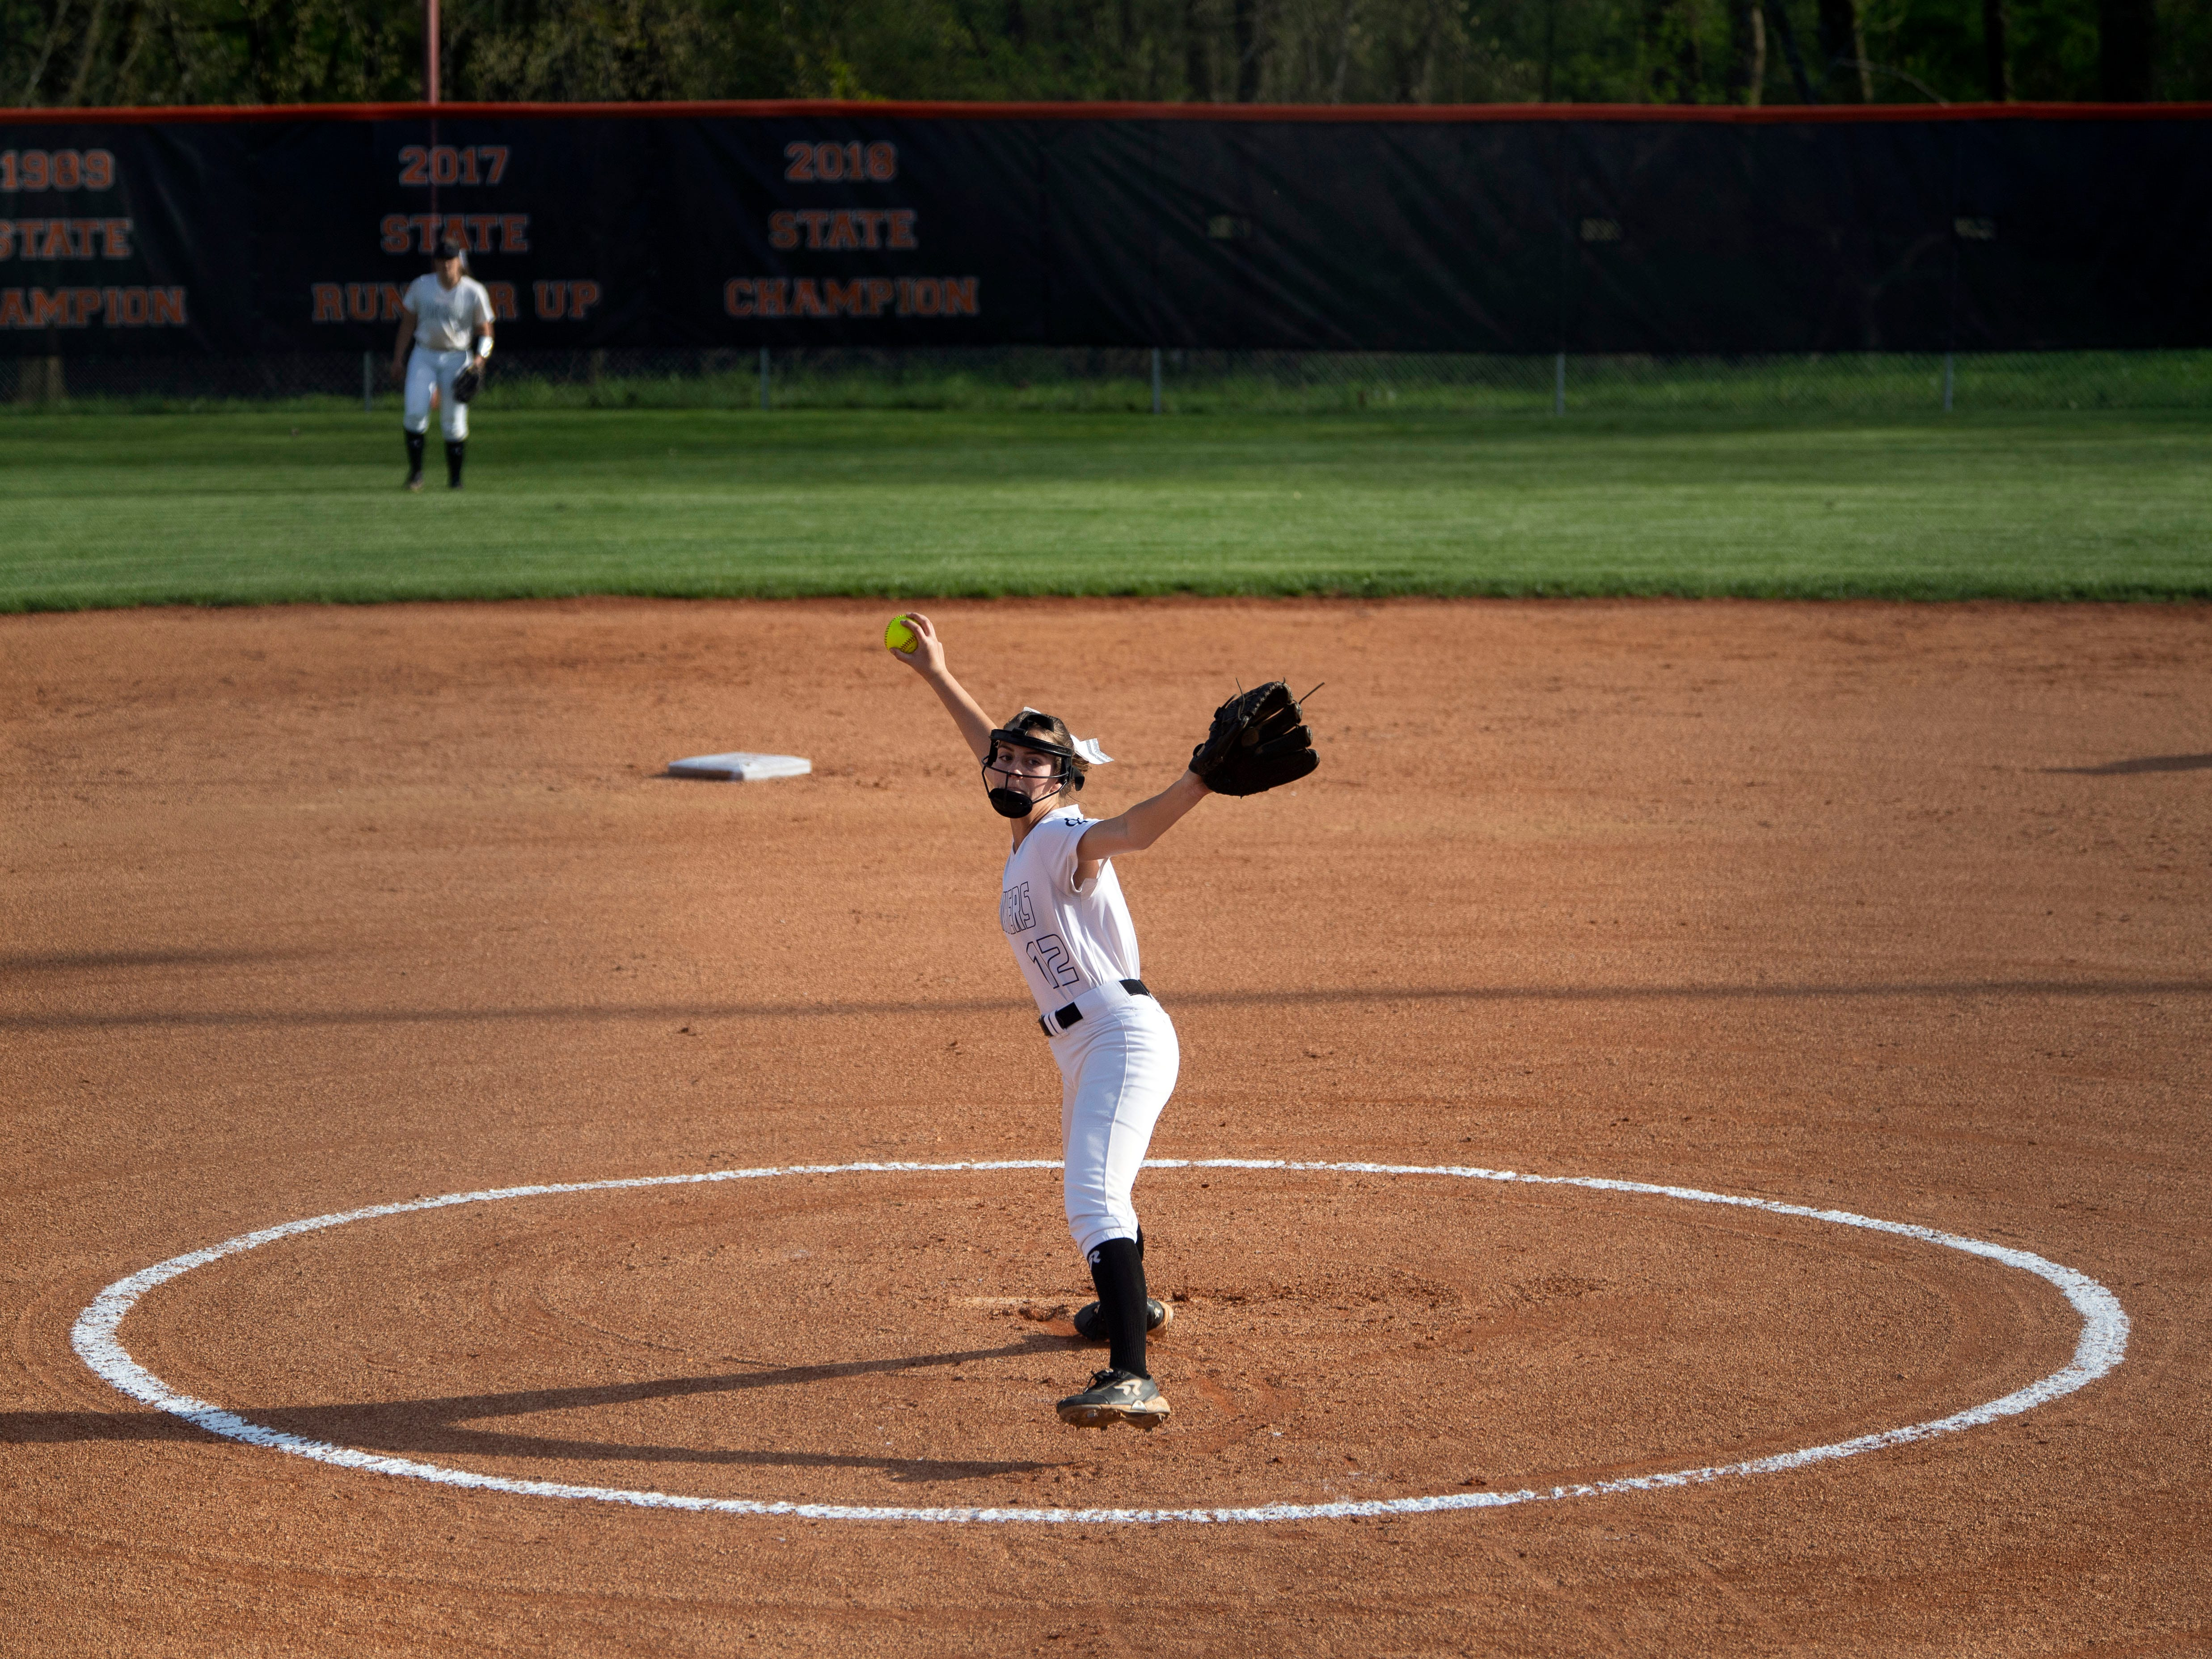 Powell's Allison Farr (12) pitches in the game against Central on Thursday, April 11, 2019.